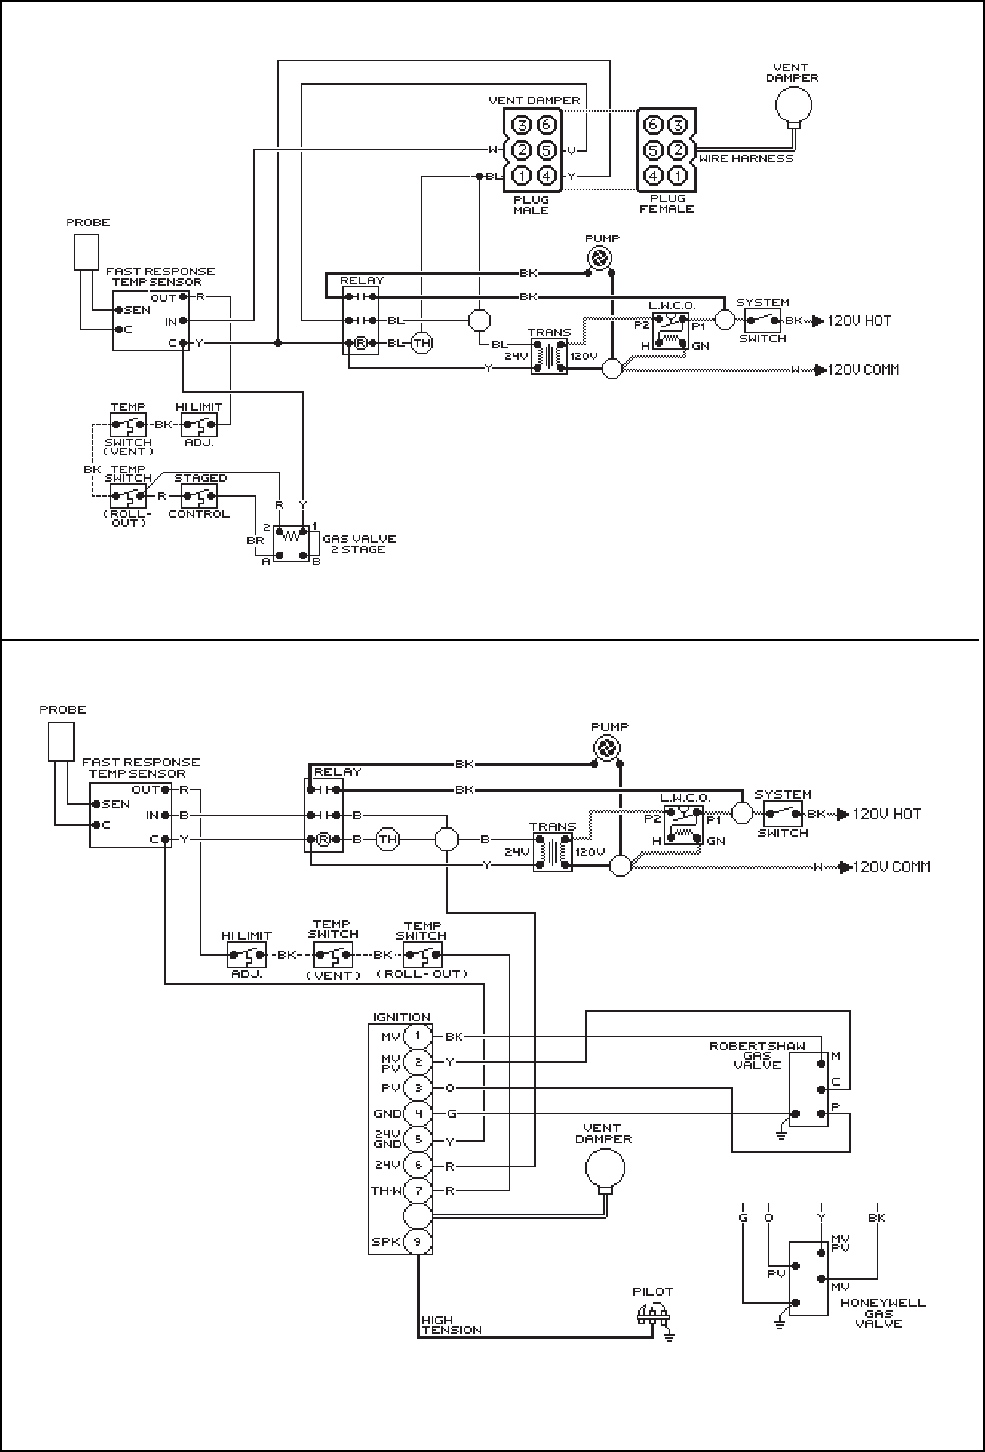 87838a36 6043 4f6d b9f2 da32ff145506 bg16 page 22 of raypak boiler 0180b user guide manualsonline com boiler interlock wiring diagram at bayanpartner.co